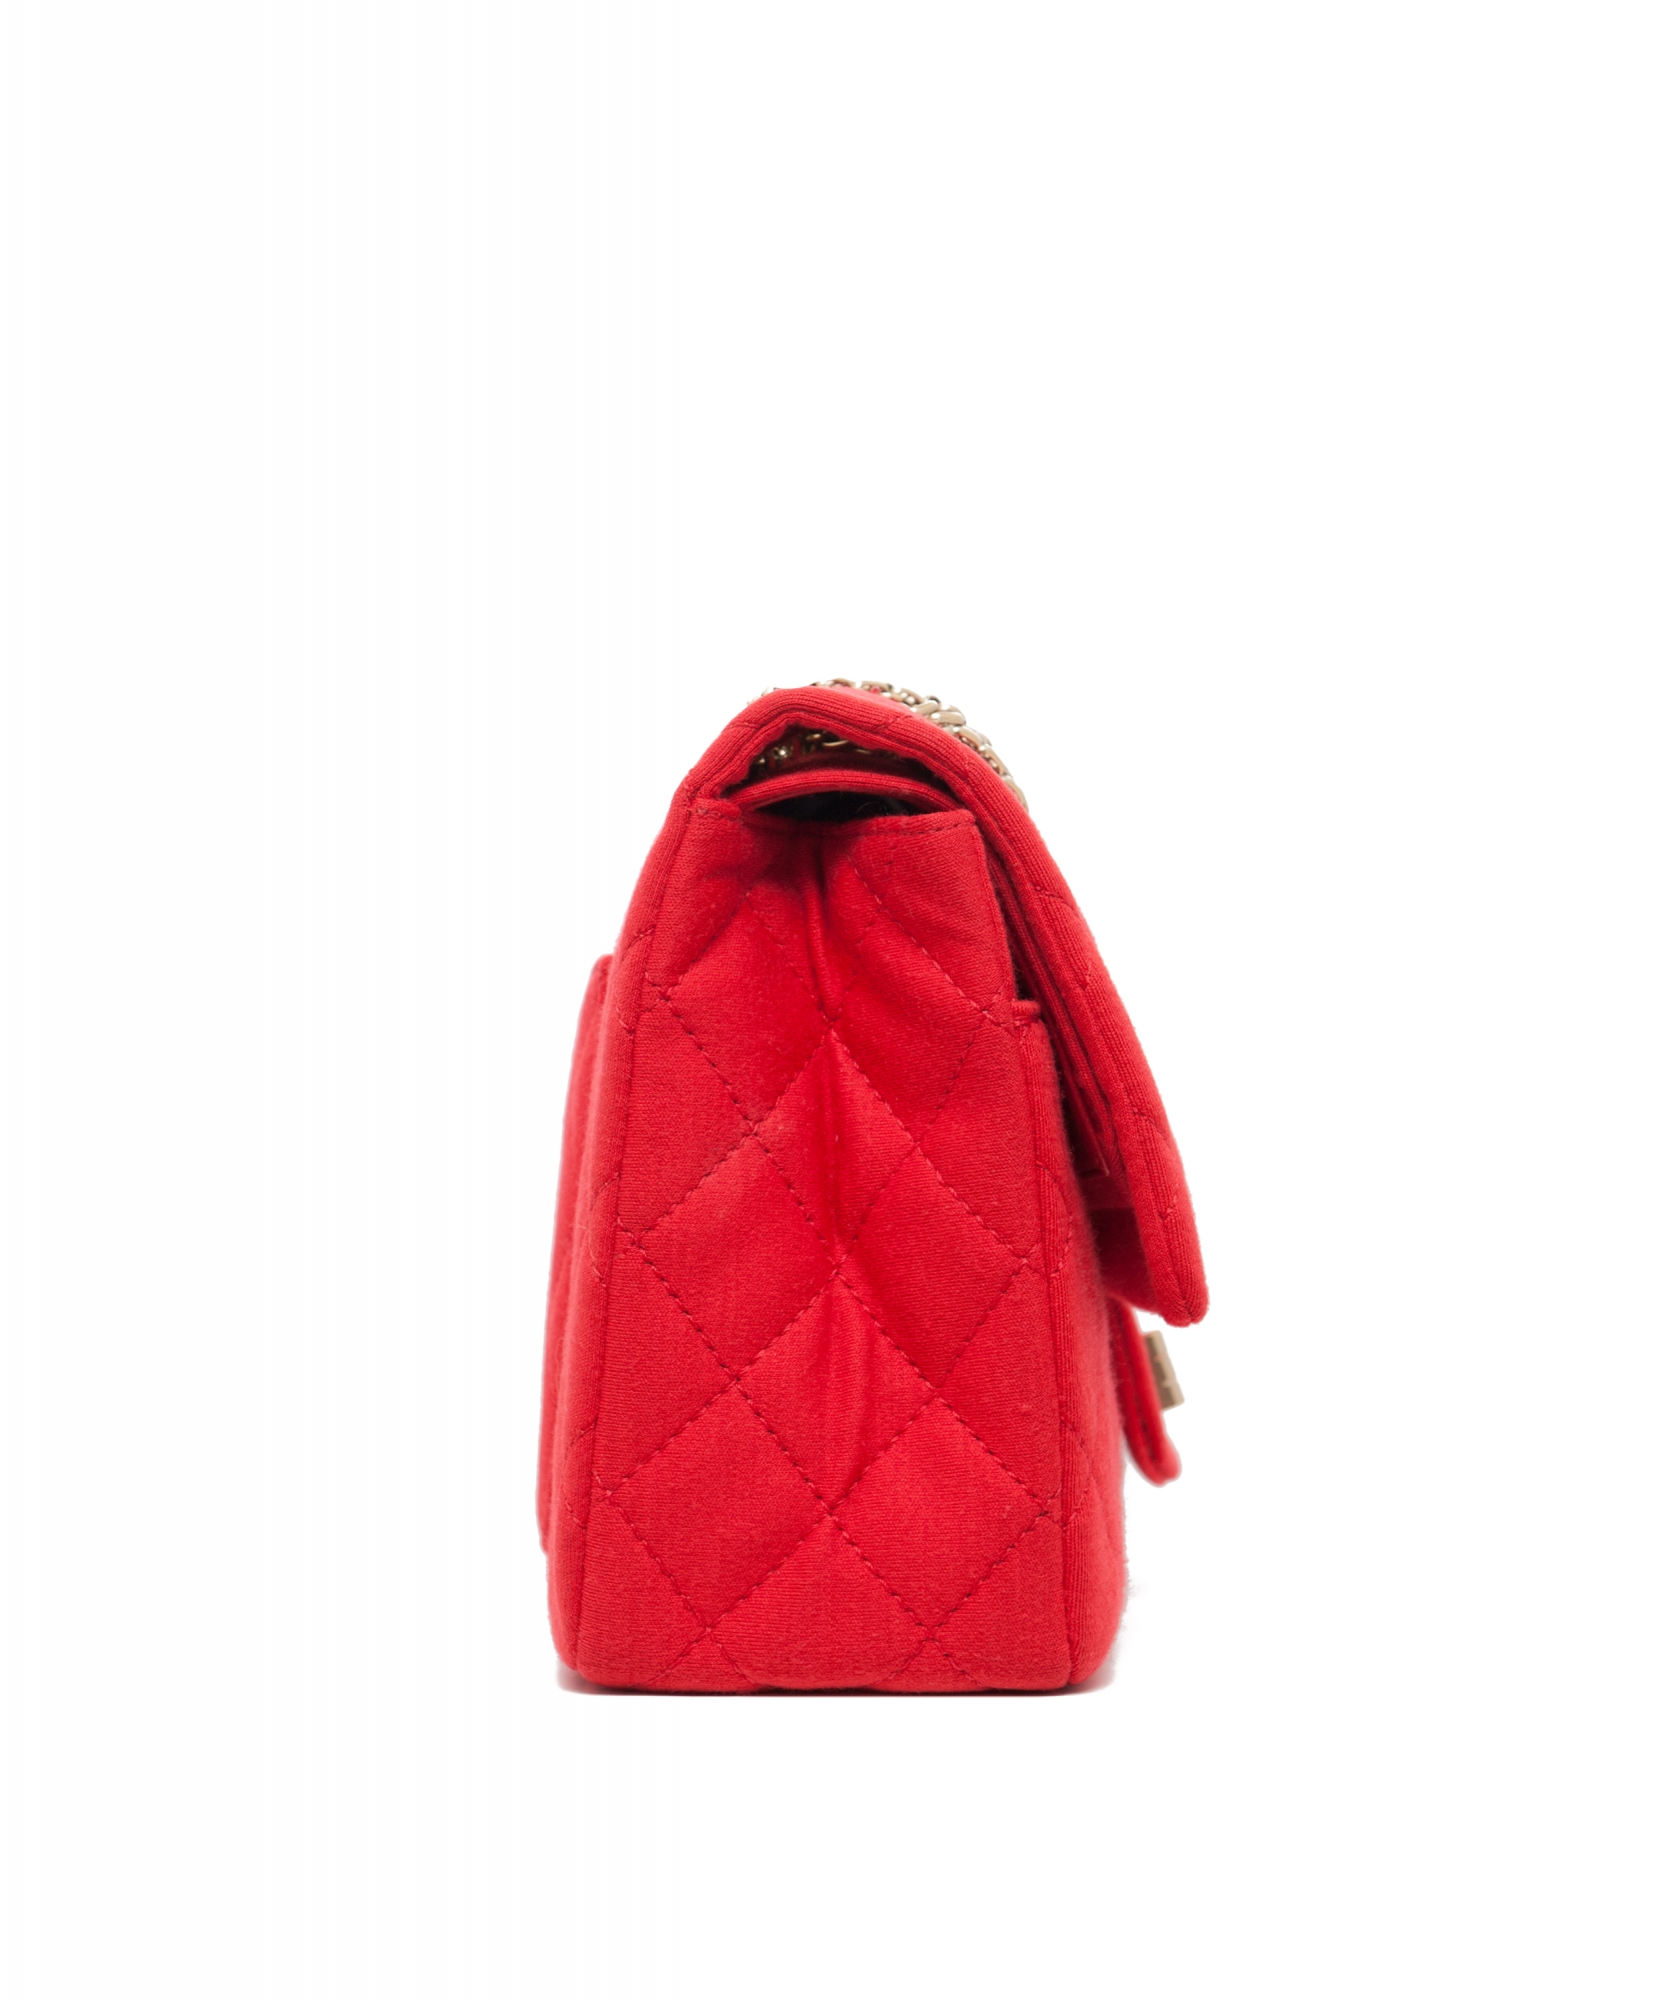 861e1e16c37d ... Chanel Red 2.55 Reissue Quilted Classic Jersey 227 Jumbo Flap Bag.  Touch to zoom